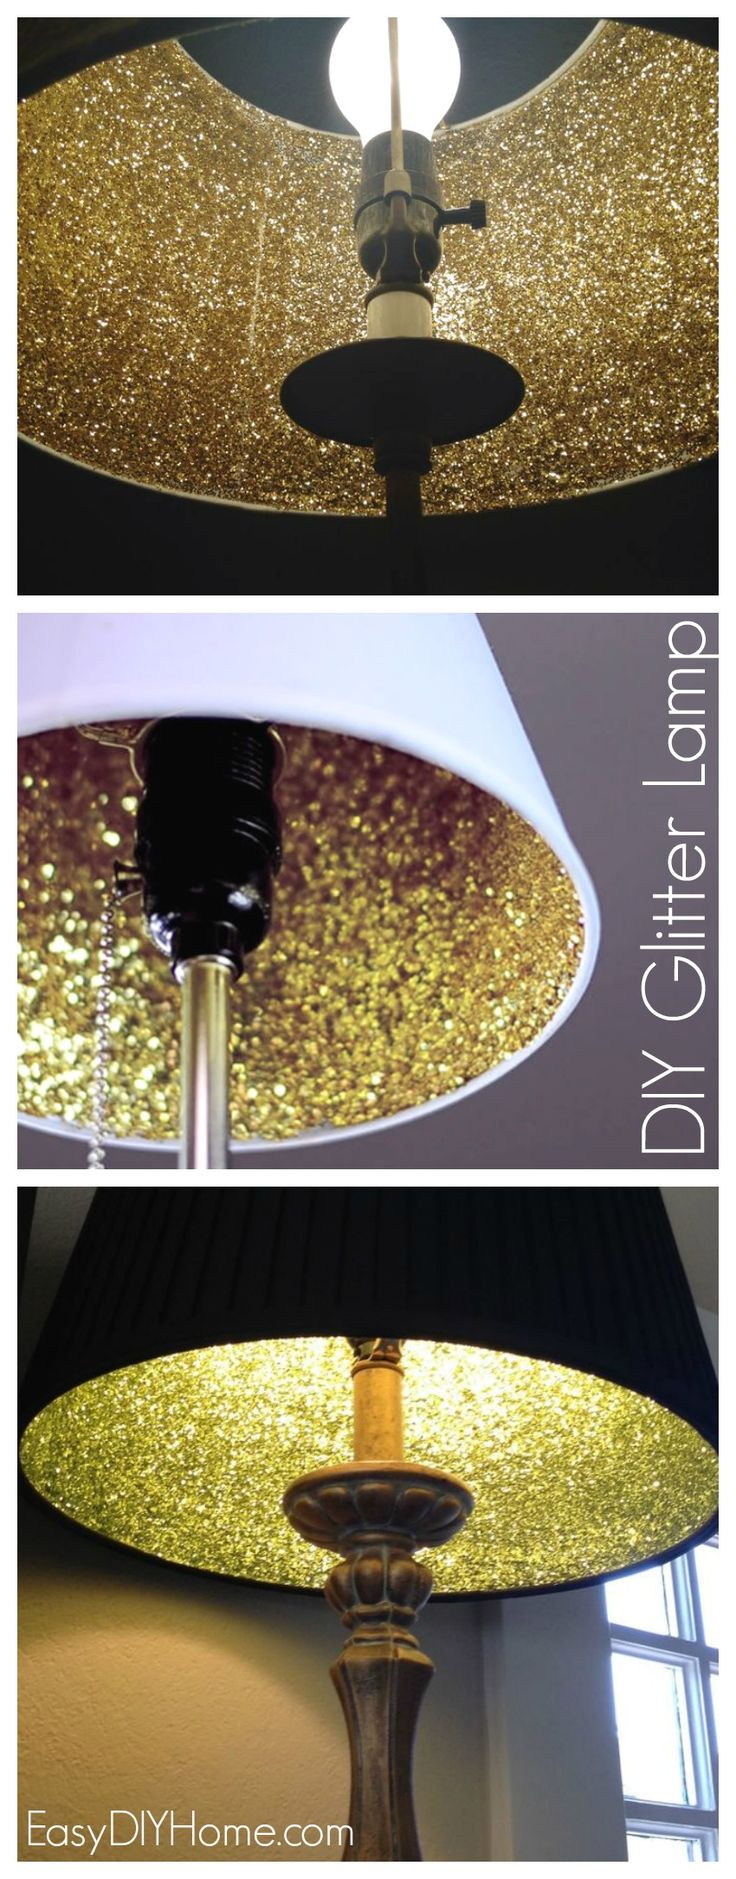 #EasyDIYHome : Glitter Lamp Project - dress up a plain lamp shade!   EasyDIYHome.com